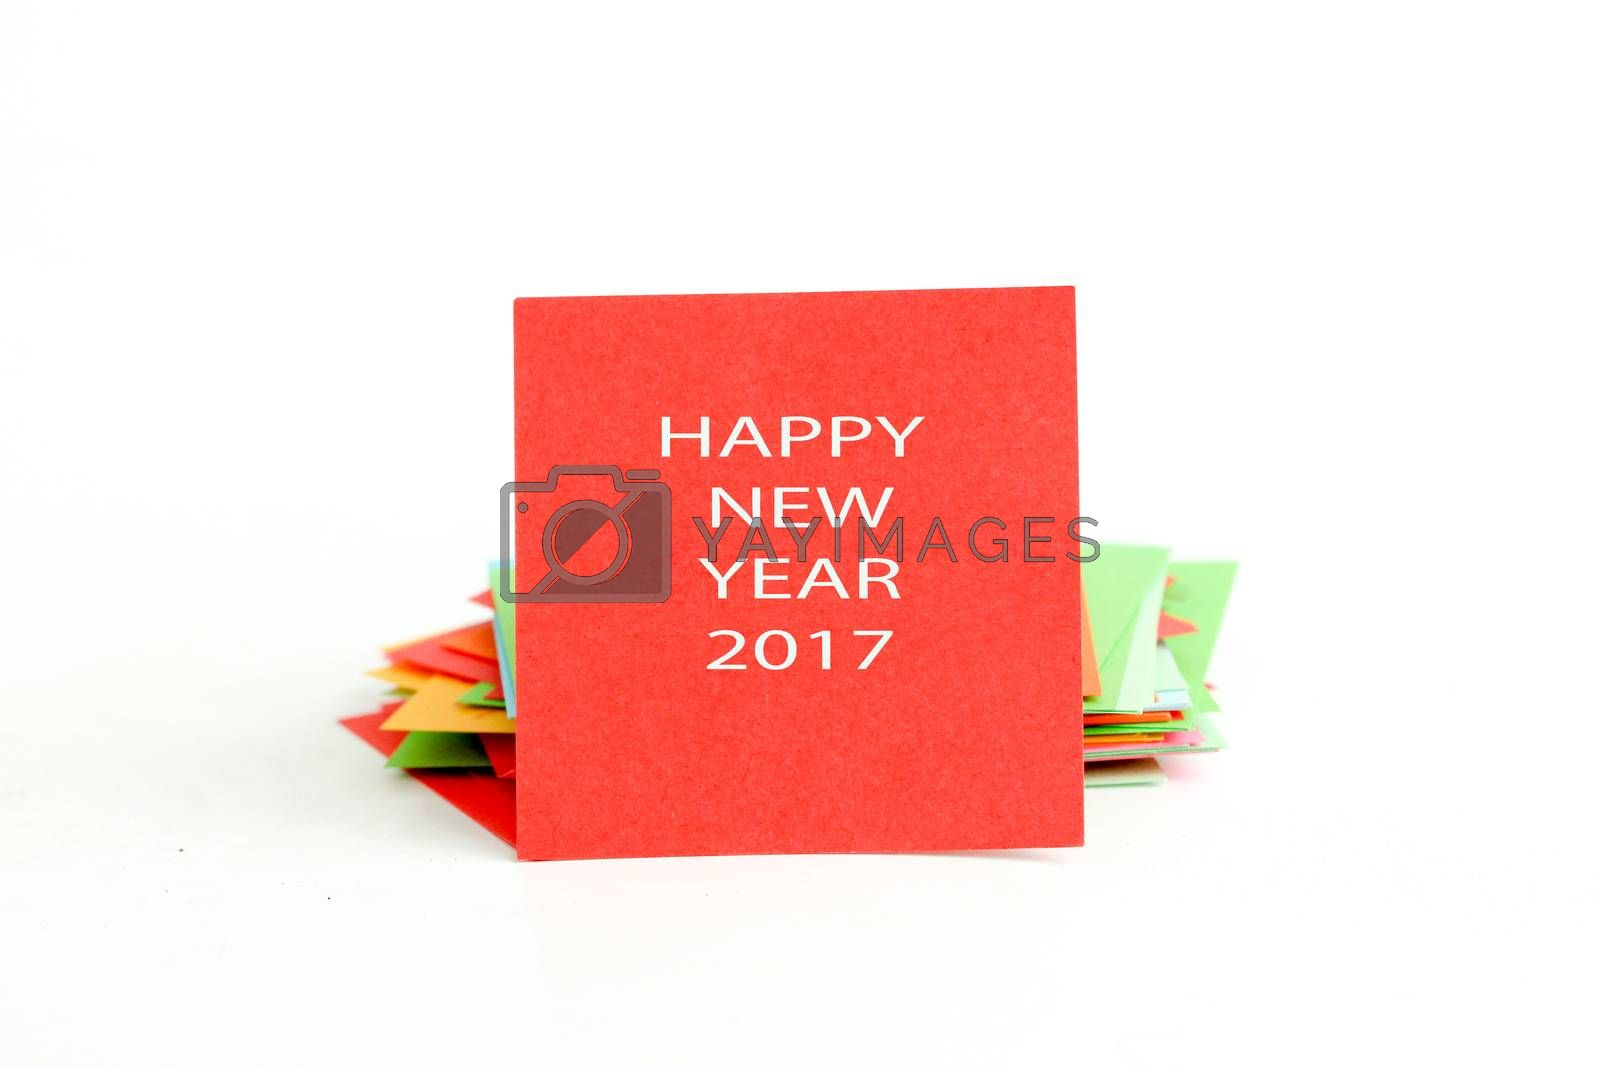 picture of a red note paper with text happy new year 2017